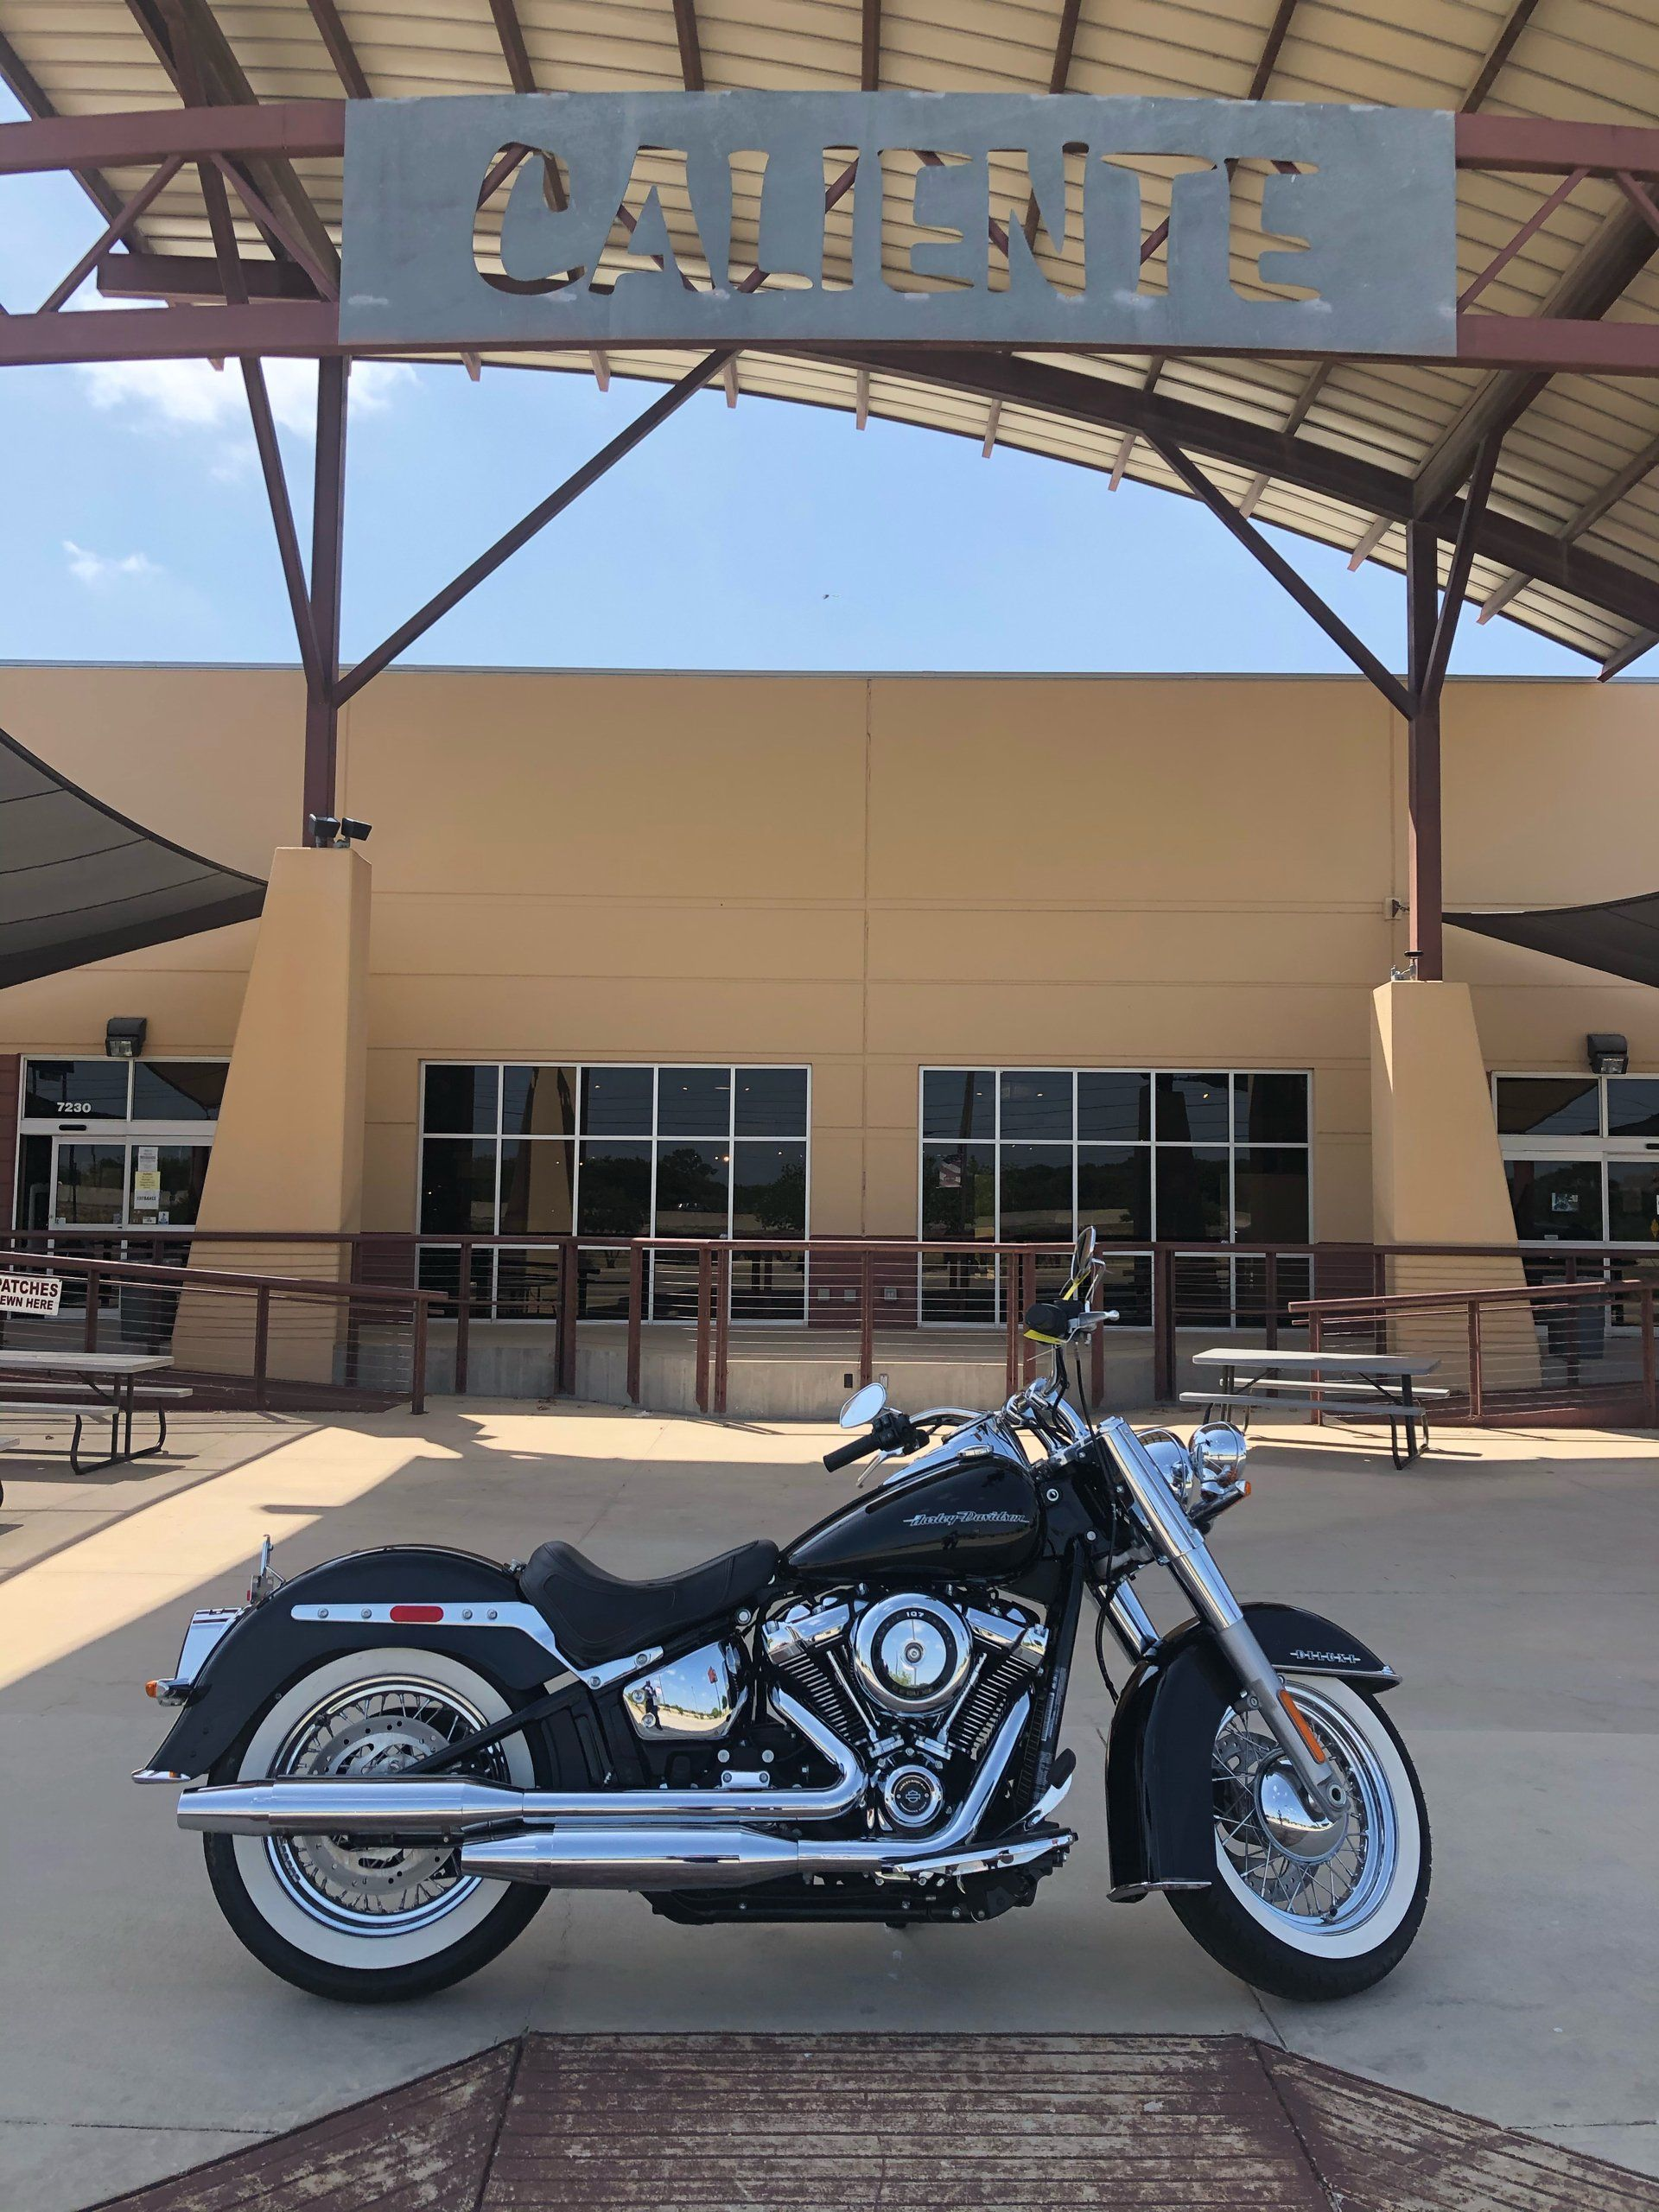 2018 Harley-Davidson Softail® Deluxe 107 in San Antonio, Texas - Photo 2